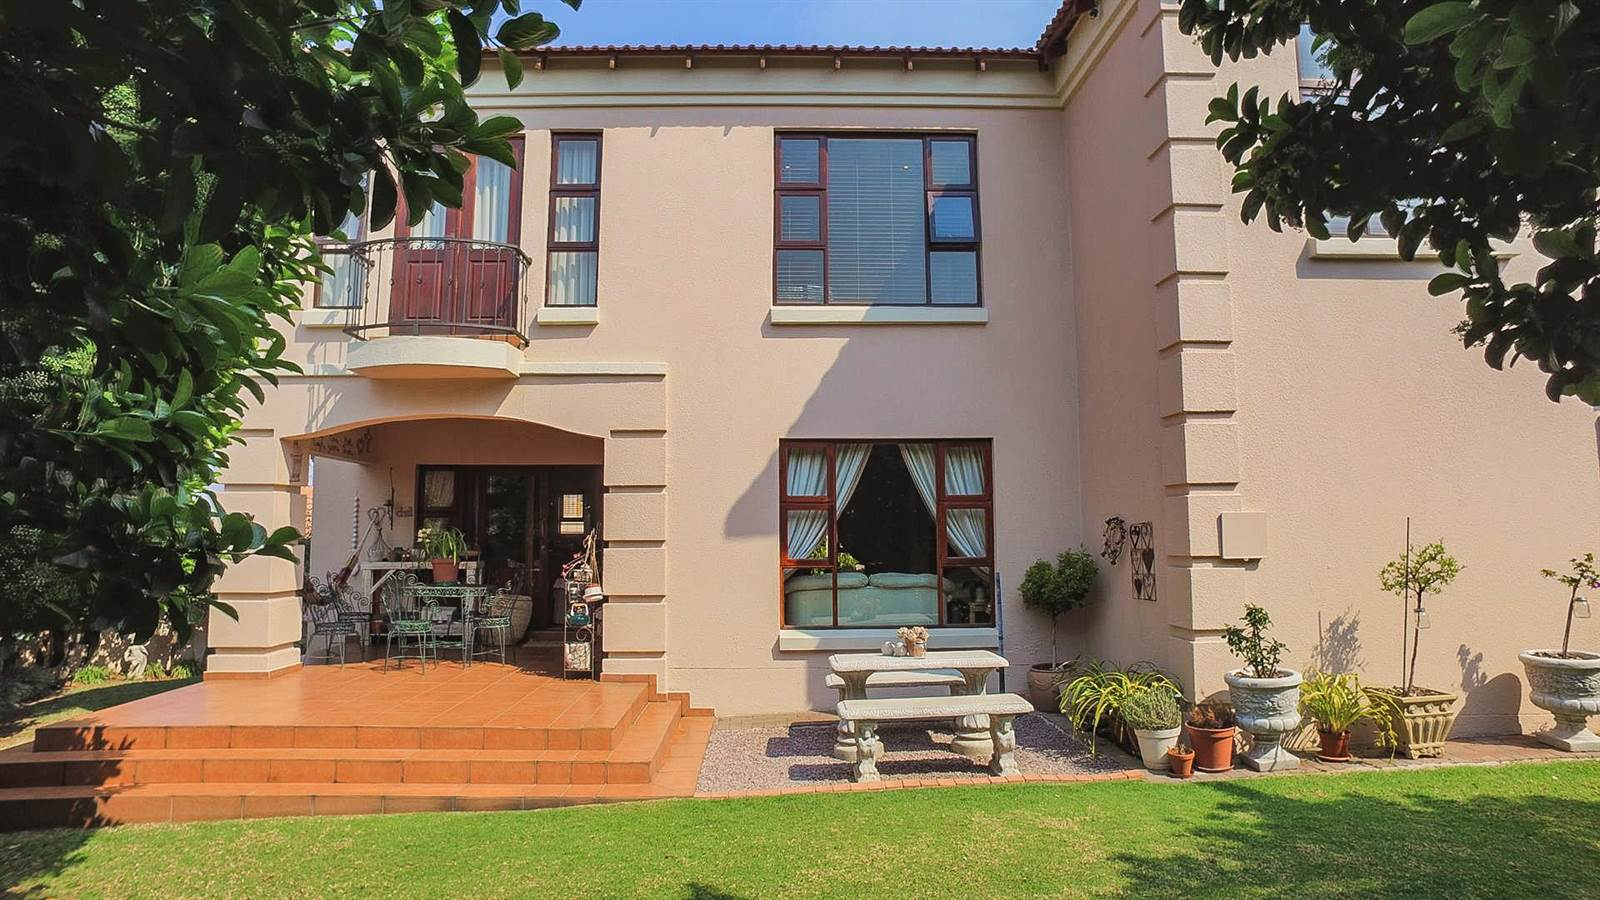 4 Bedroom Townhouse for sale in Mulbarton ENT0067436 : photo#1